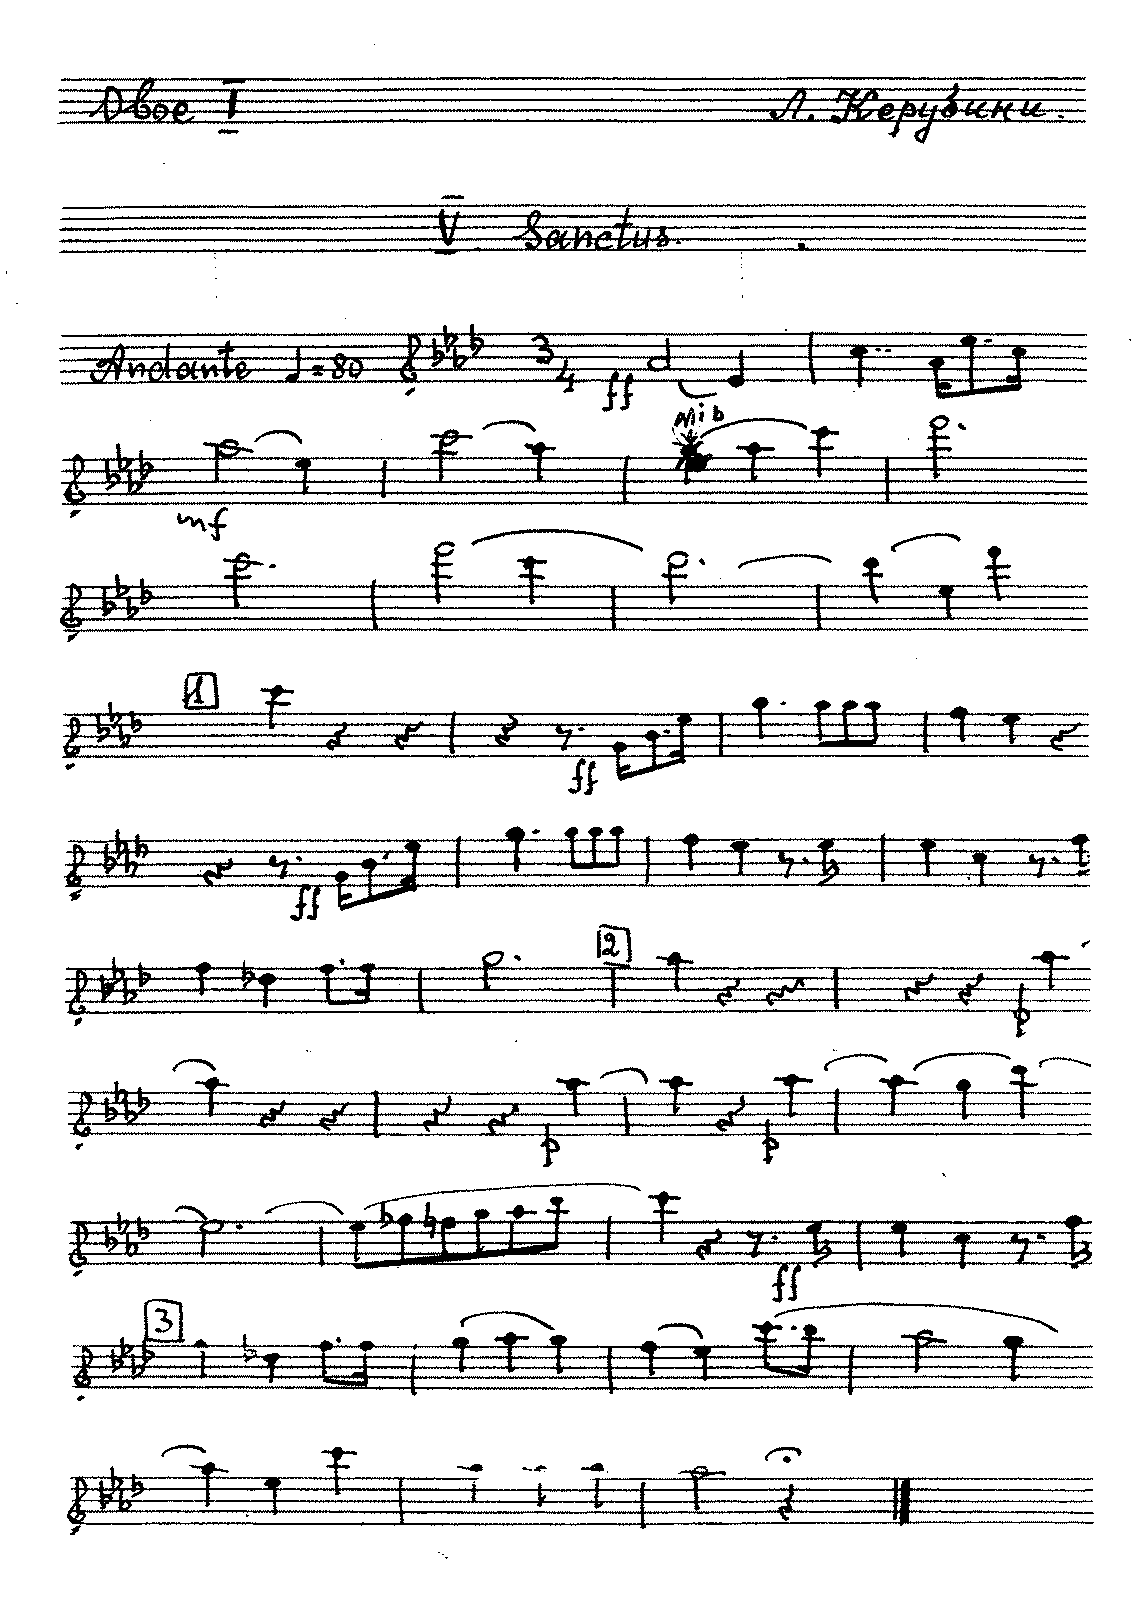 PMLP59513-Cherubini-Requiem Sanctus Woodwinds.pdf